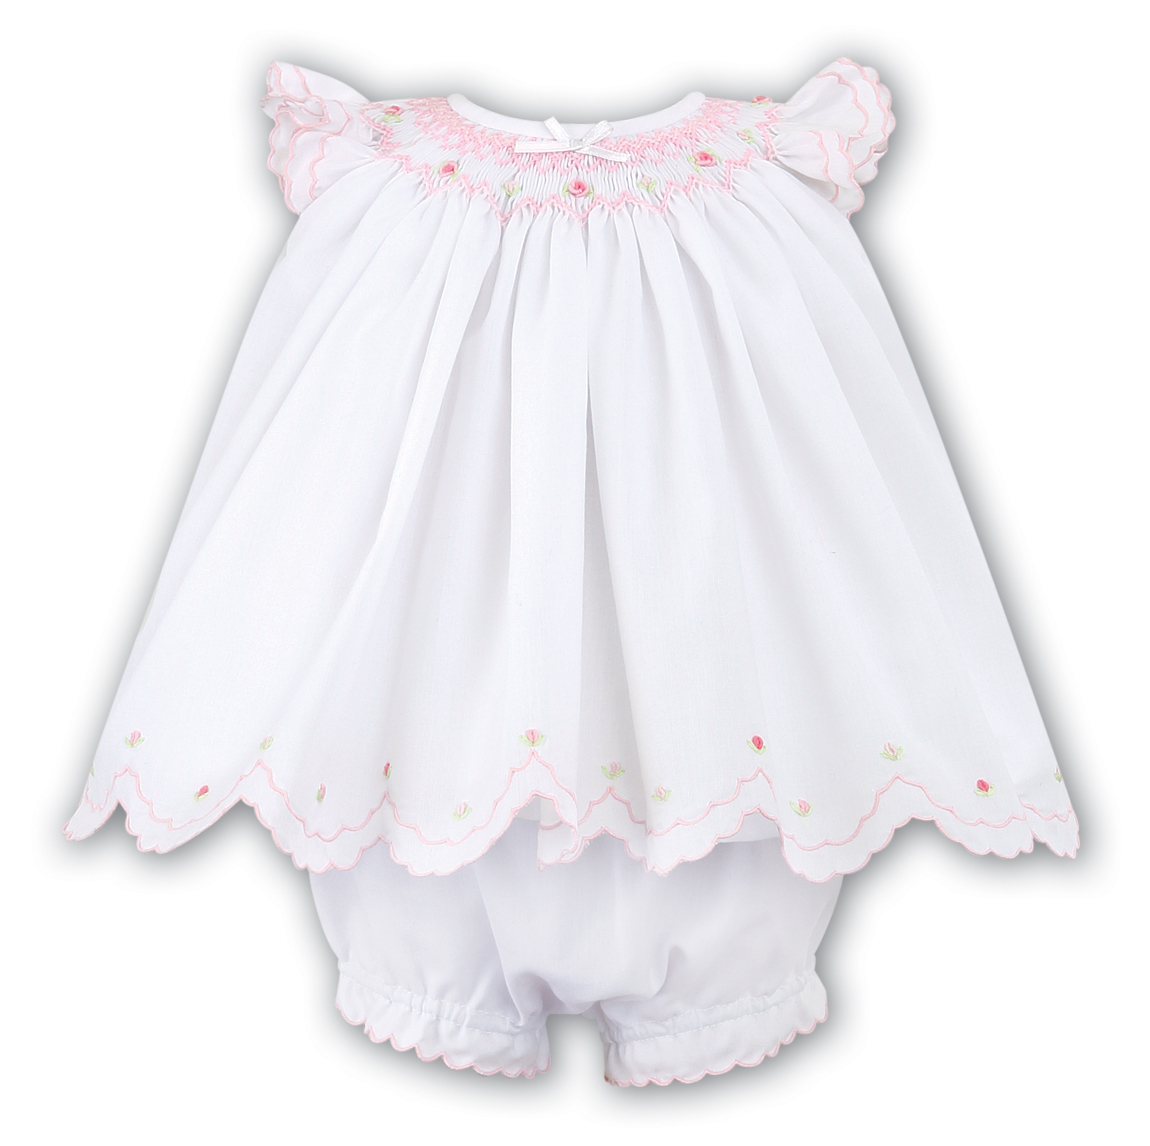 Susie Dress Panties Baby Boutique Clothing